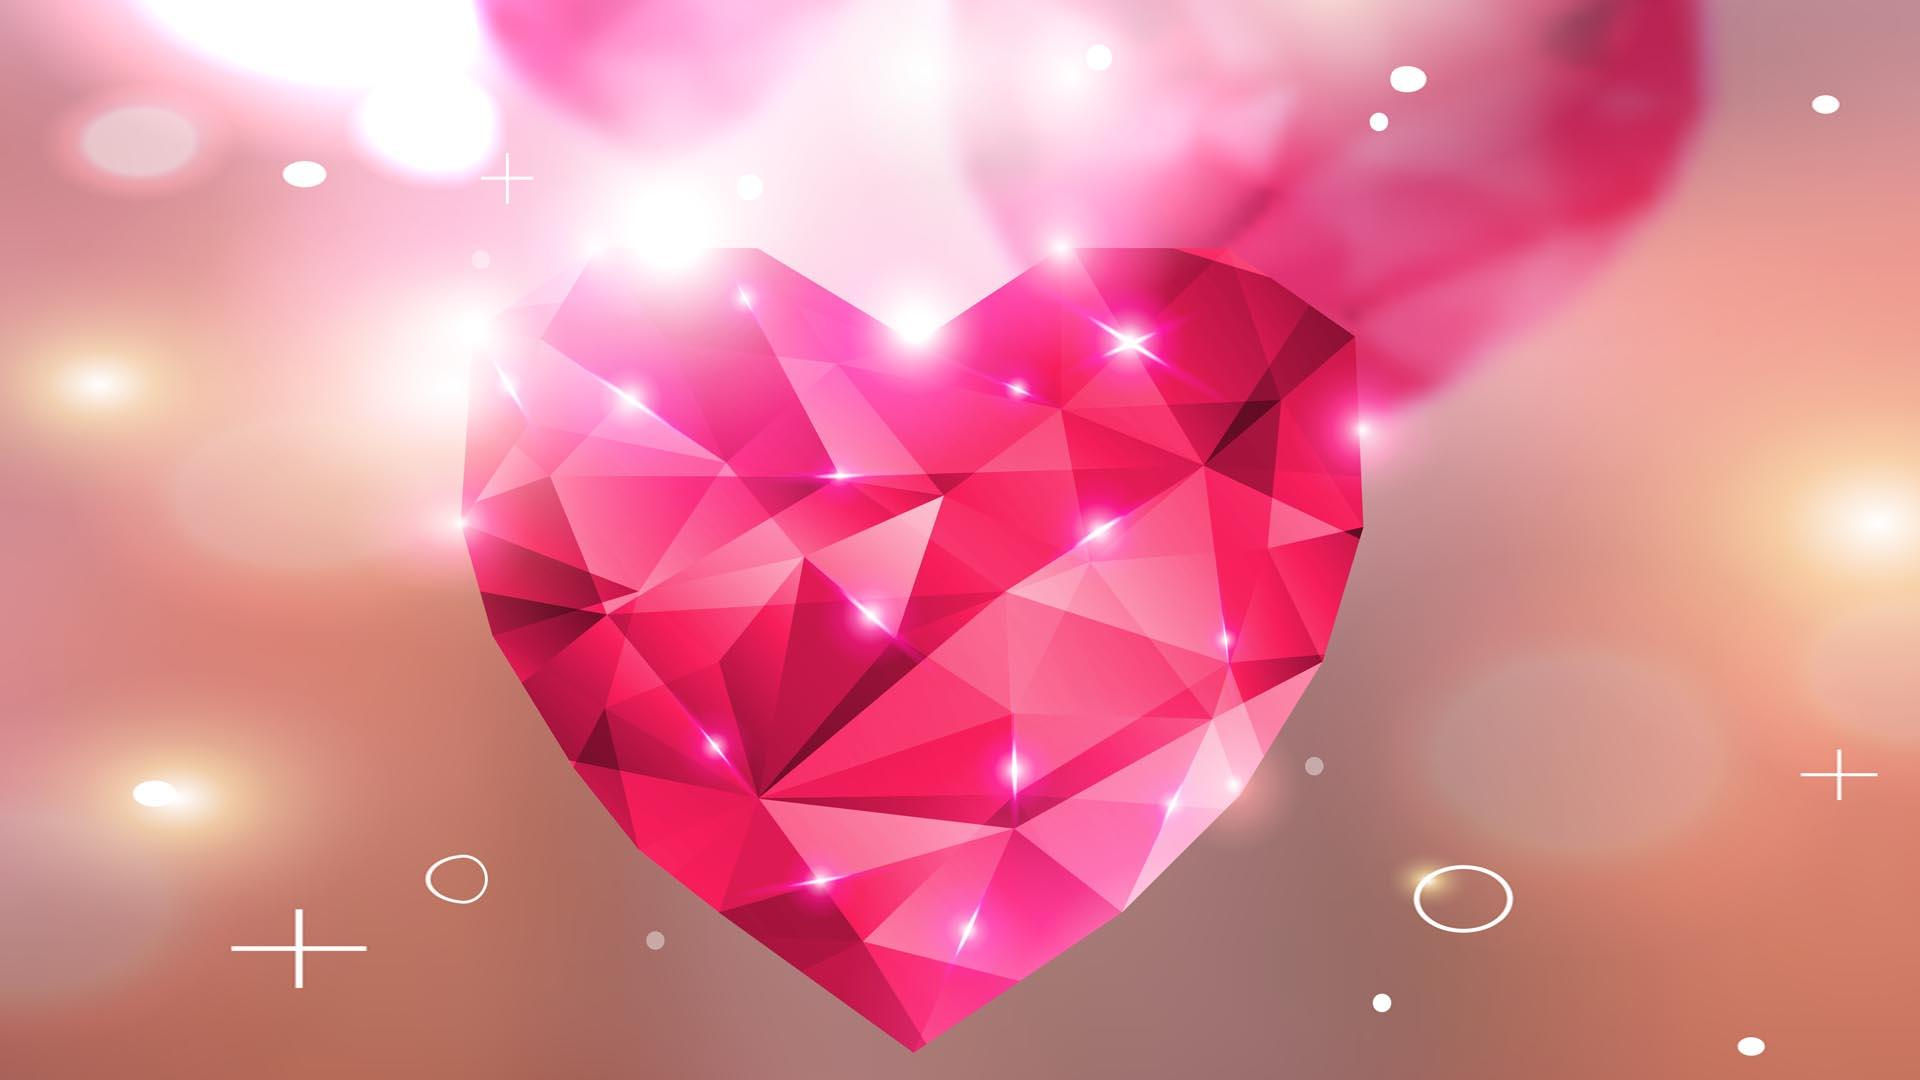 Diamond Hearts Live Wallpaper Google Play Store revenue